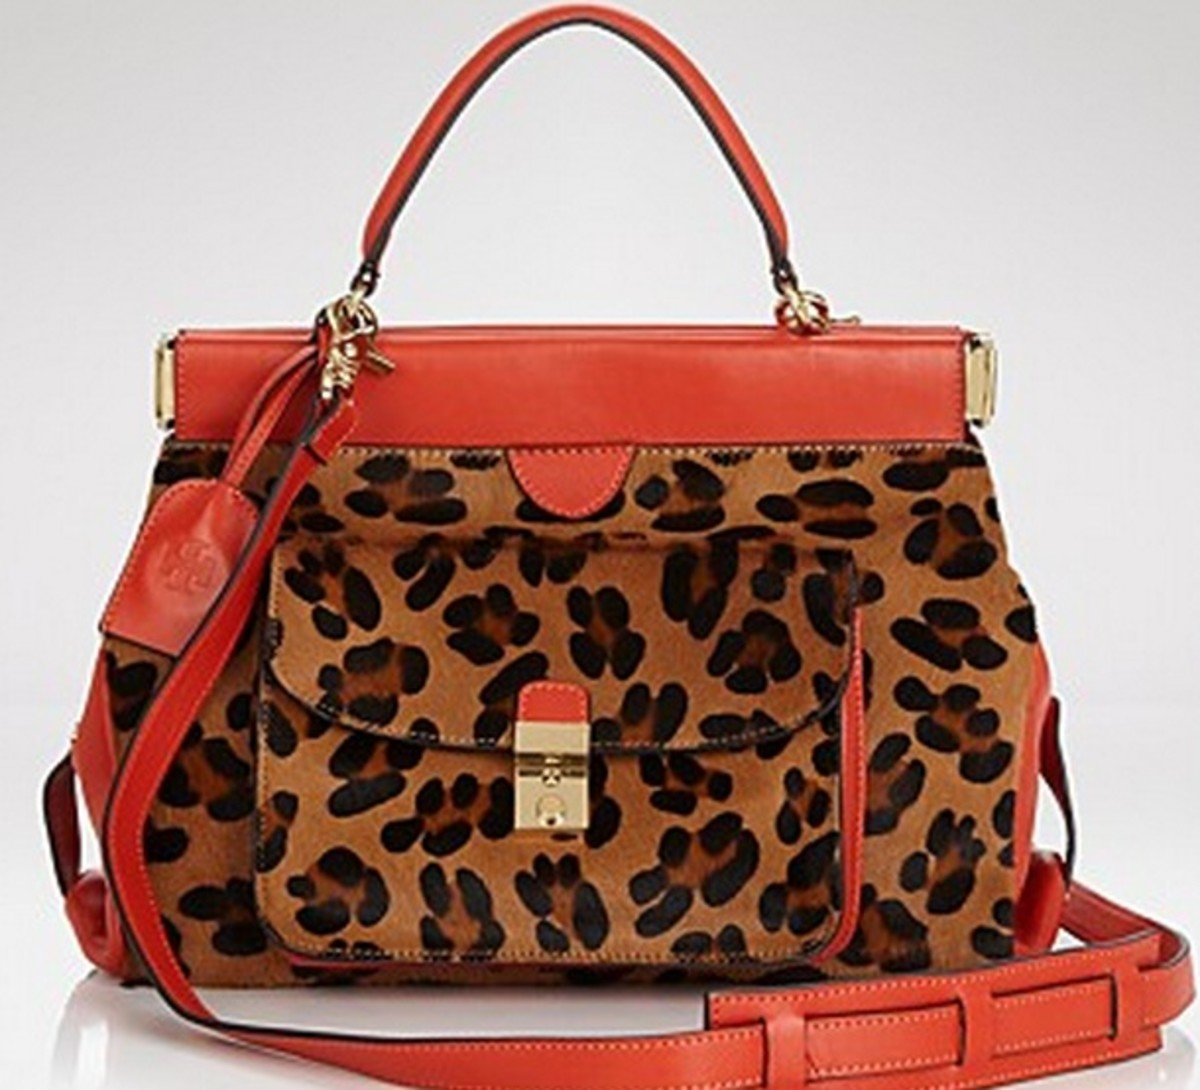 Tory Burch Satchel, Priscilla Small $695. Where to Find Cheap Designer Handbags.